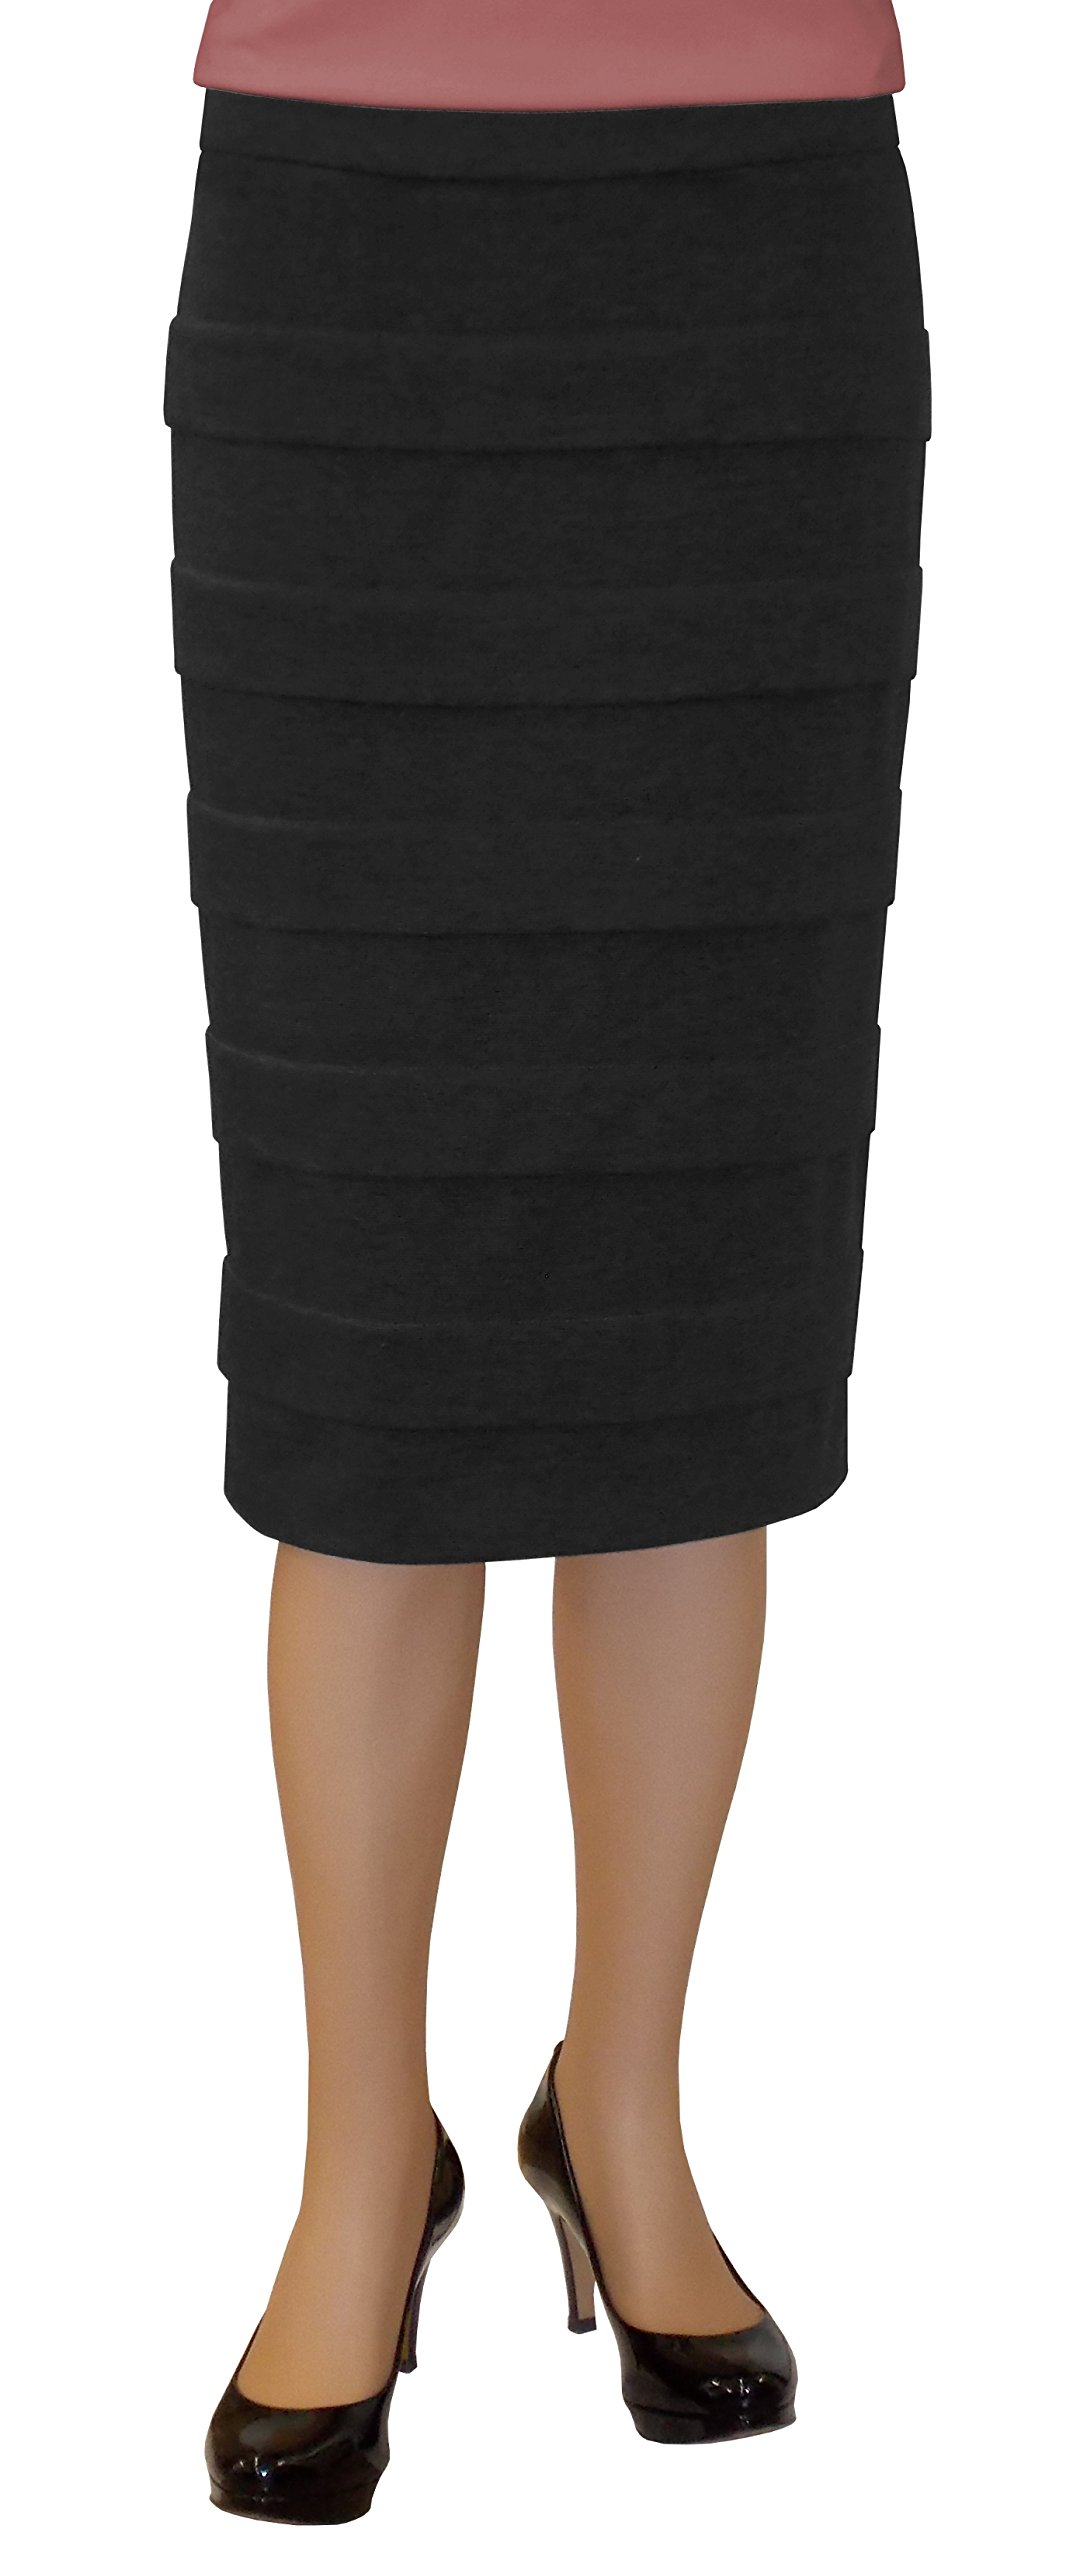 Baby'O Clothing Co. Women's Banded Pencil Skirt Black Size 4